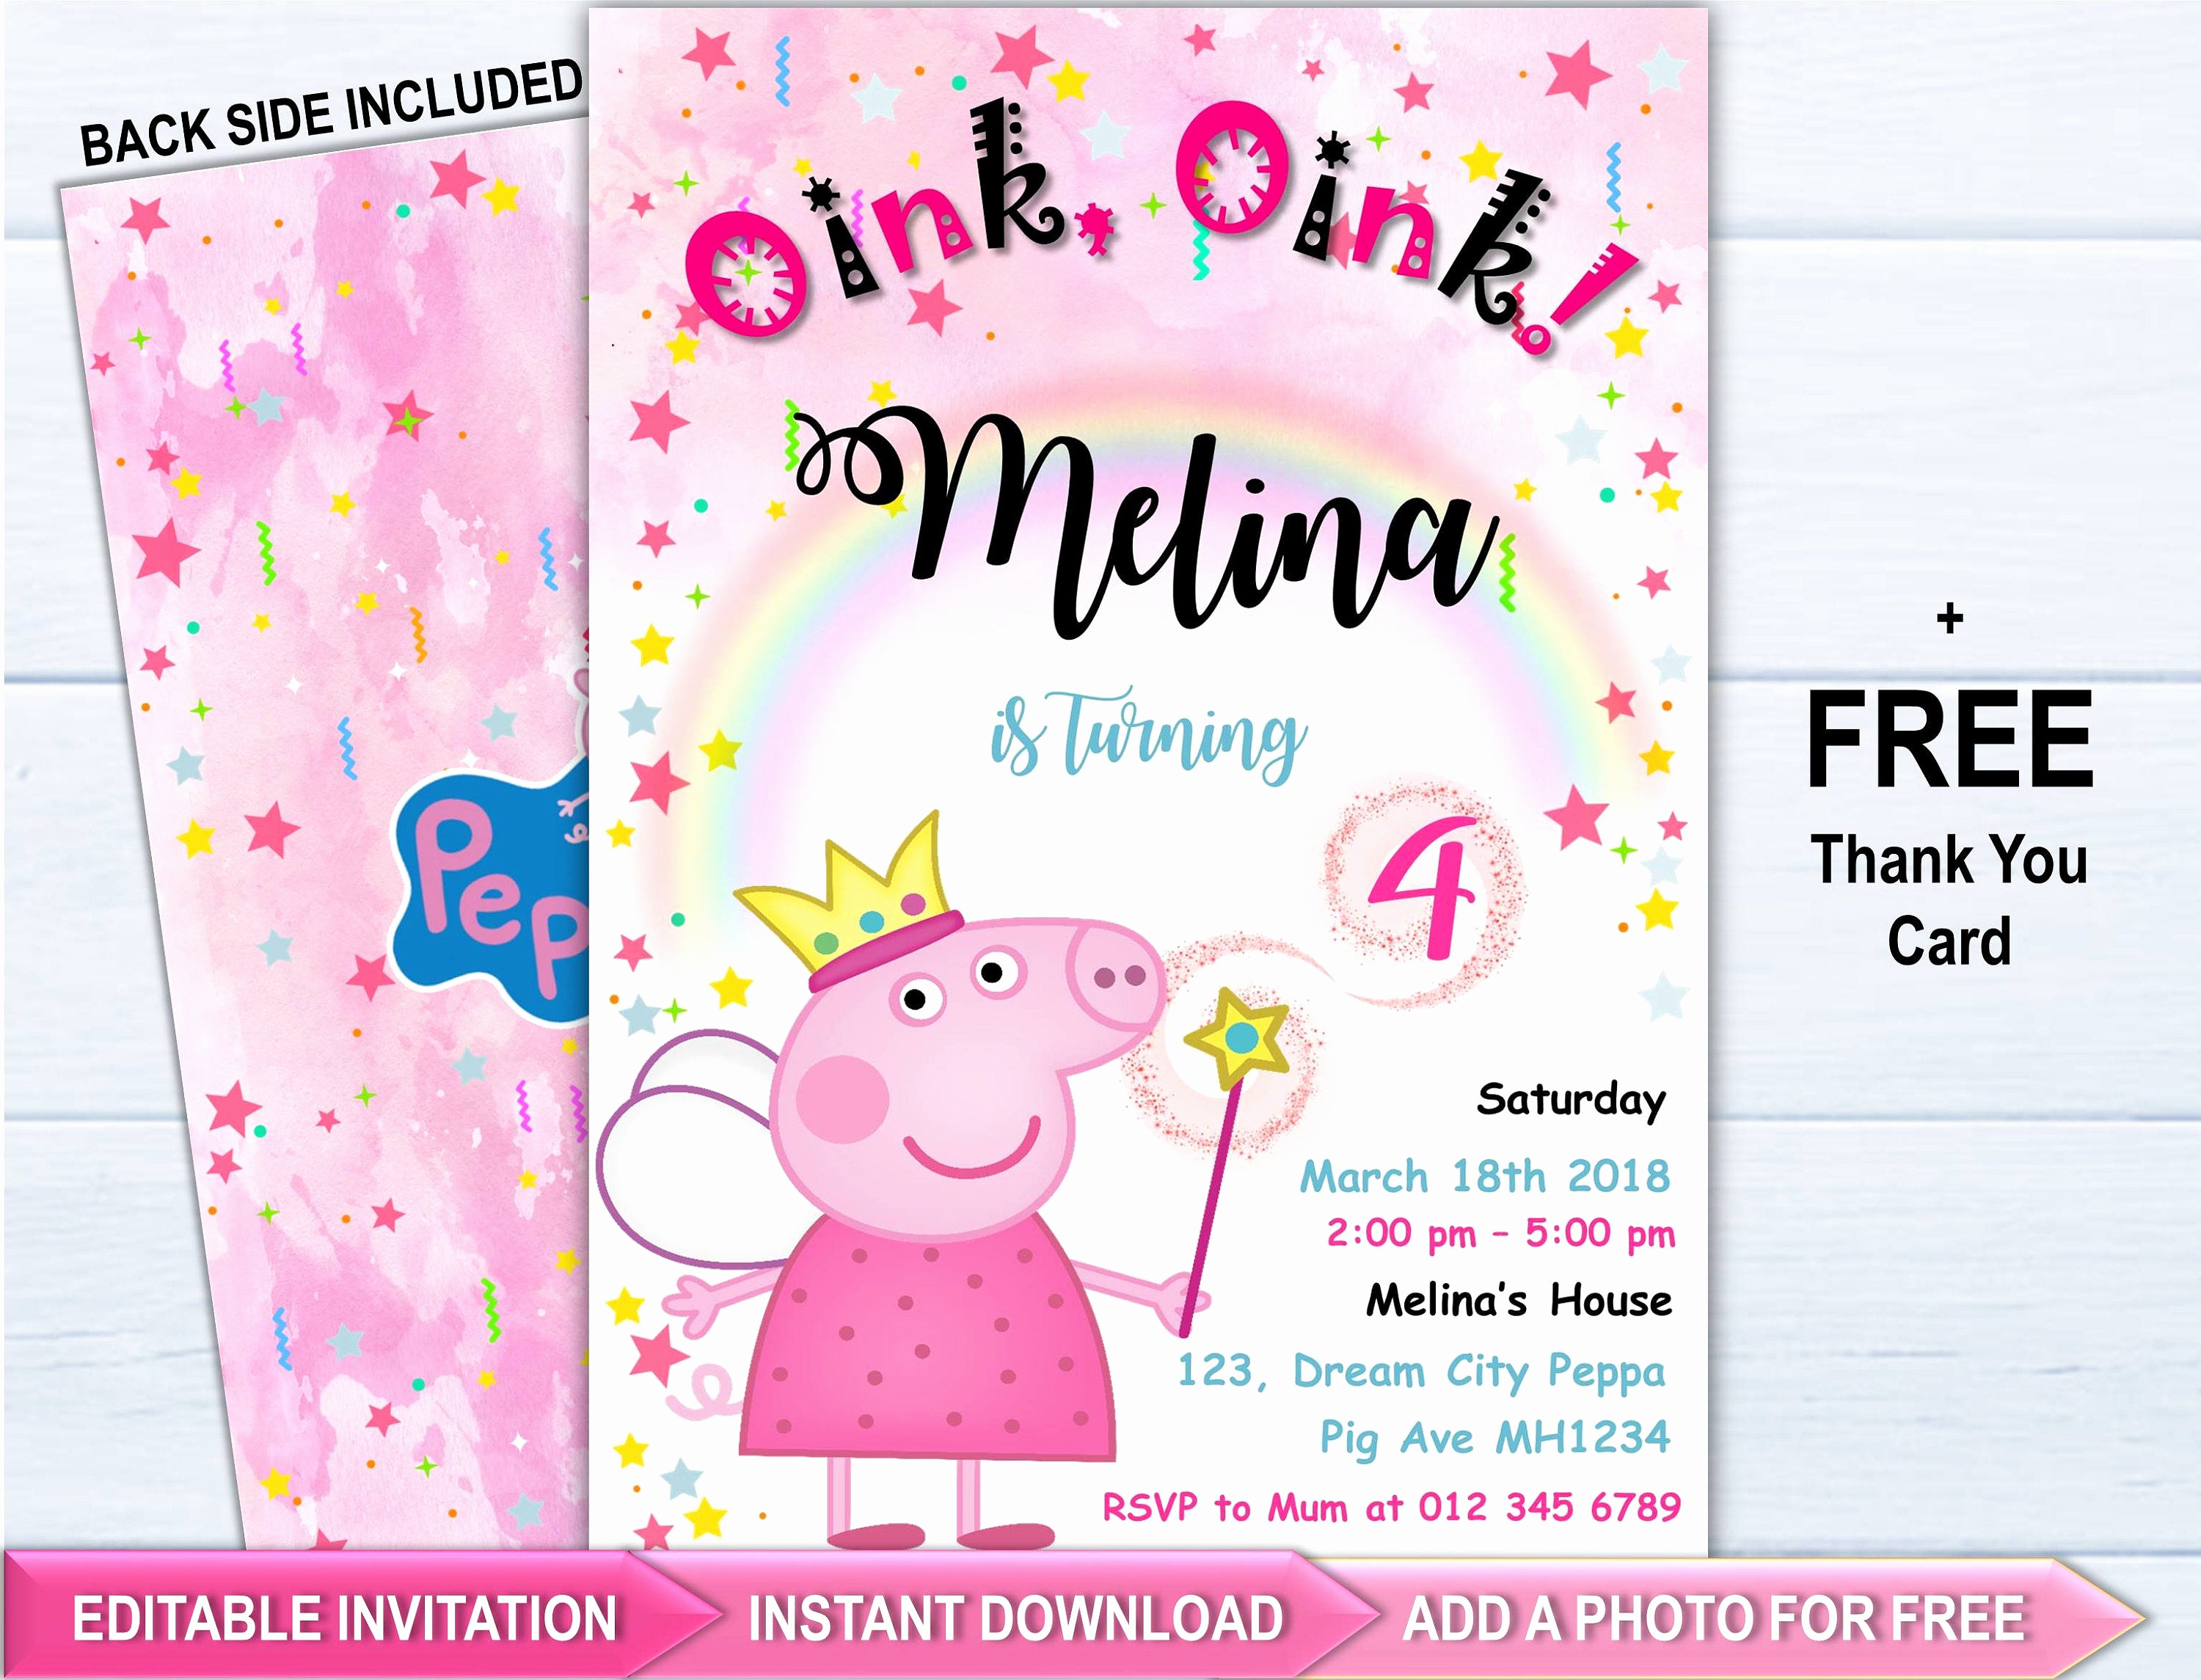 Peppa Pig Birthday Invitation Beautiful Peppa Pig Invitation Peppa Pig Party Invitation Peppa Pig